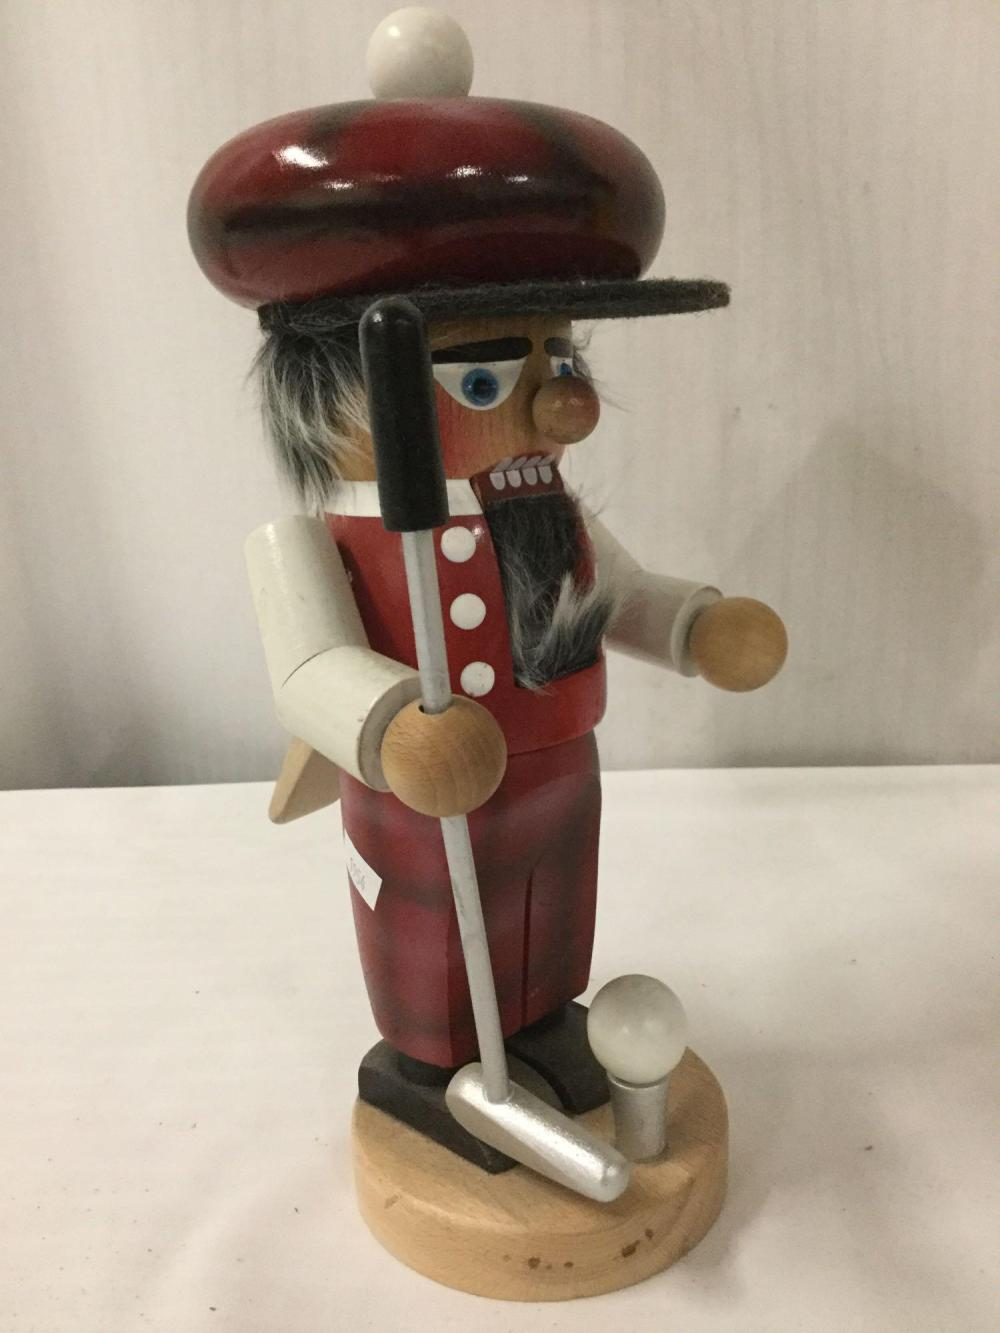 Lot 373: Lot of 2 decorative nutcrackers - Golfer is Steinbach & JP Patches by Bartell Drug Co